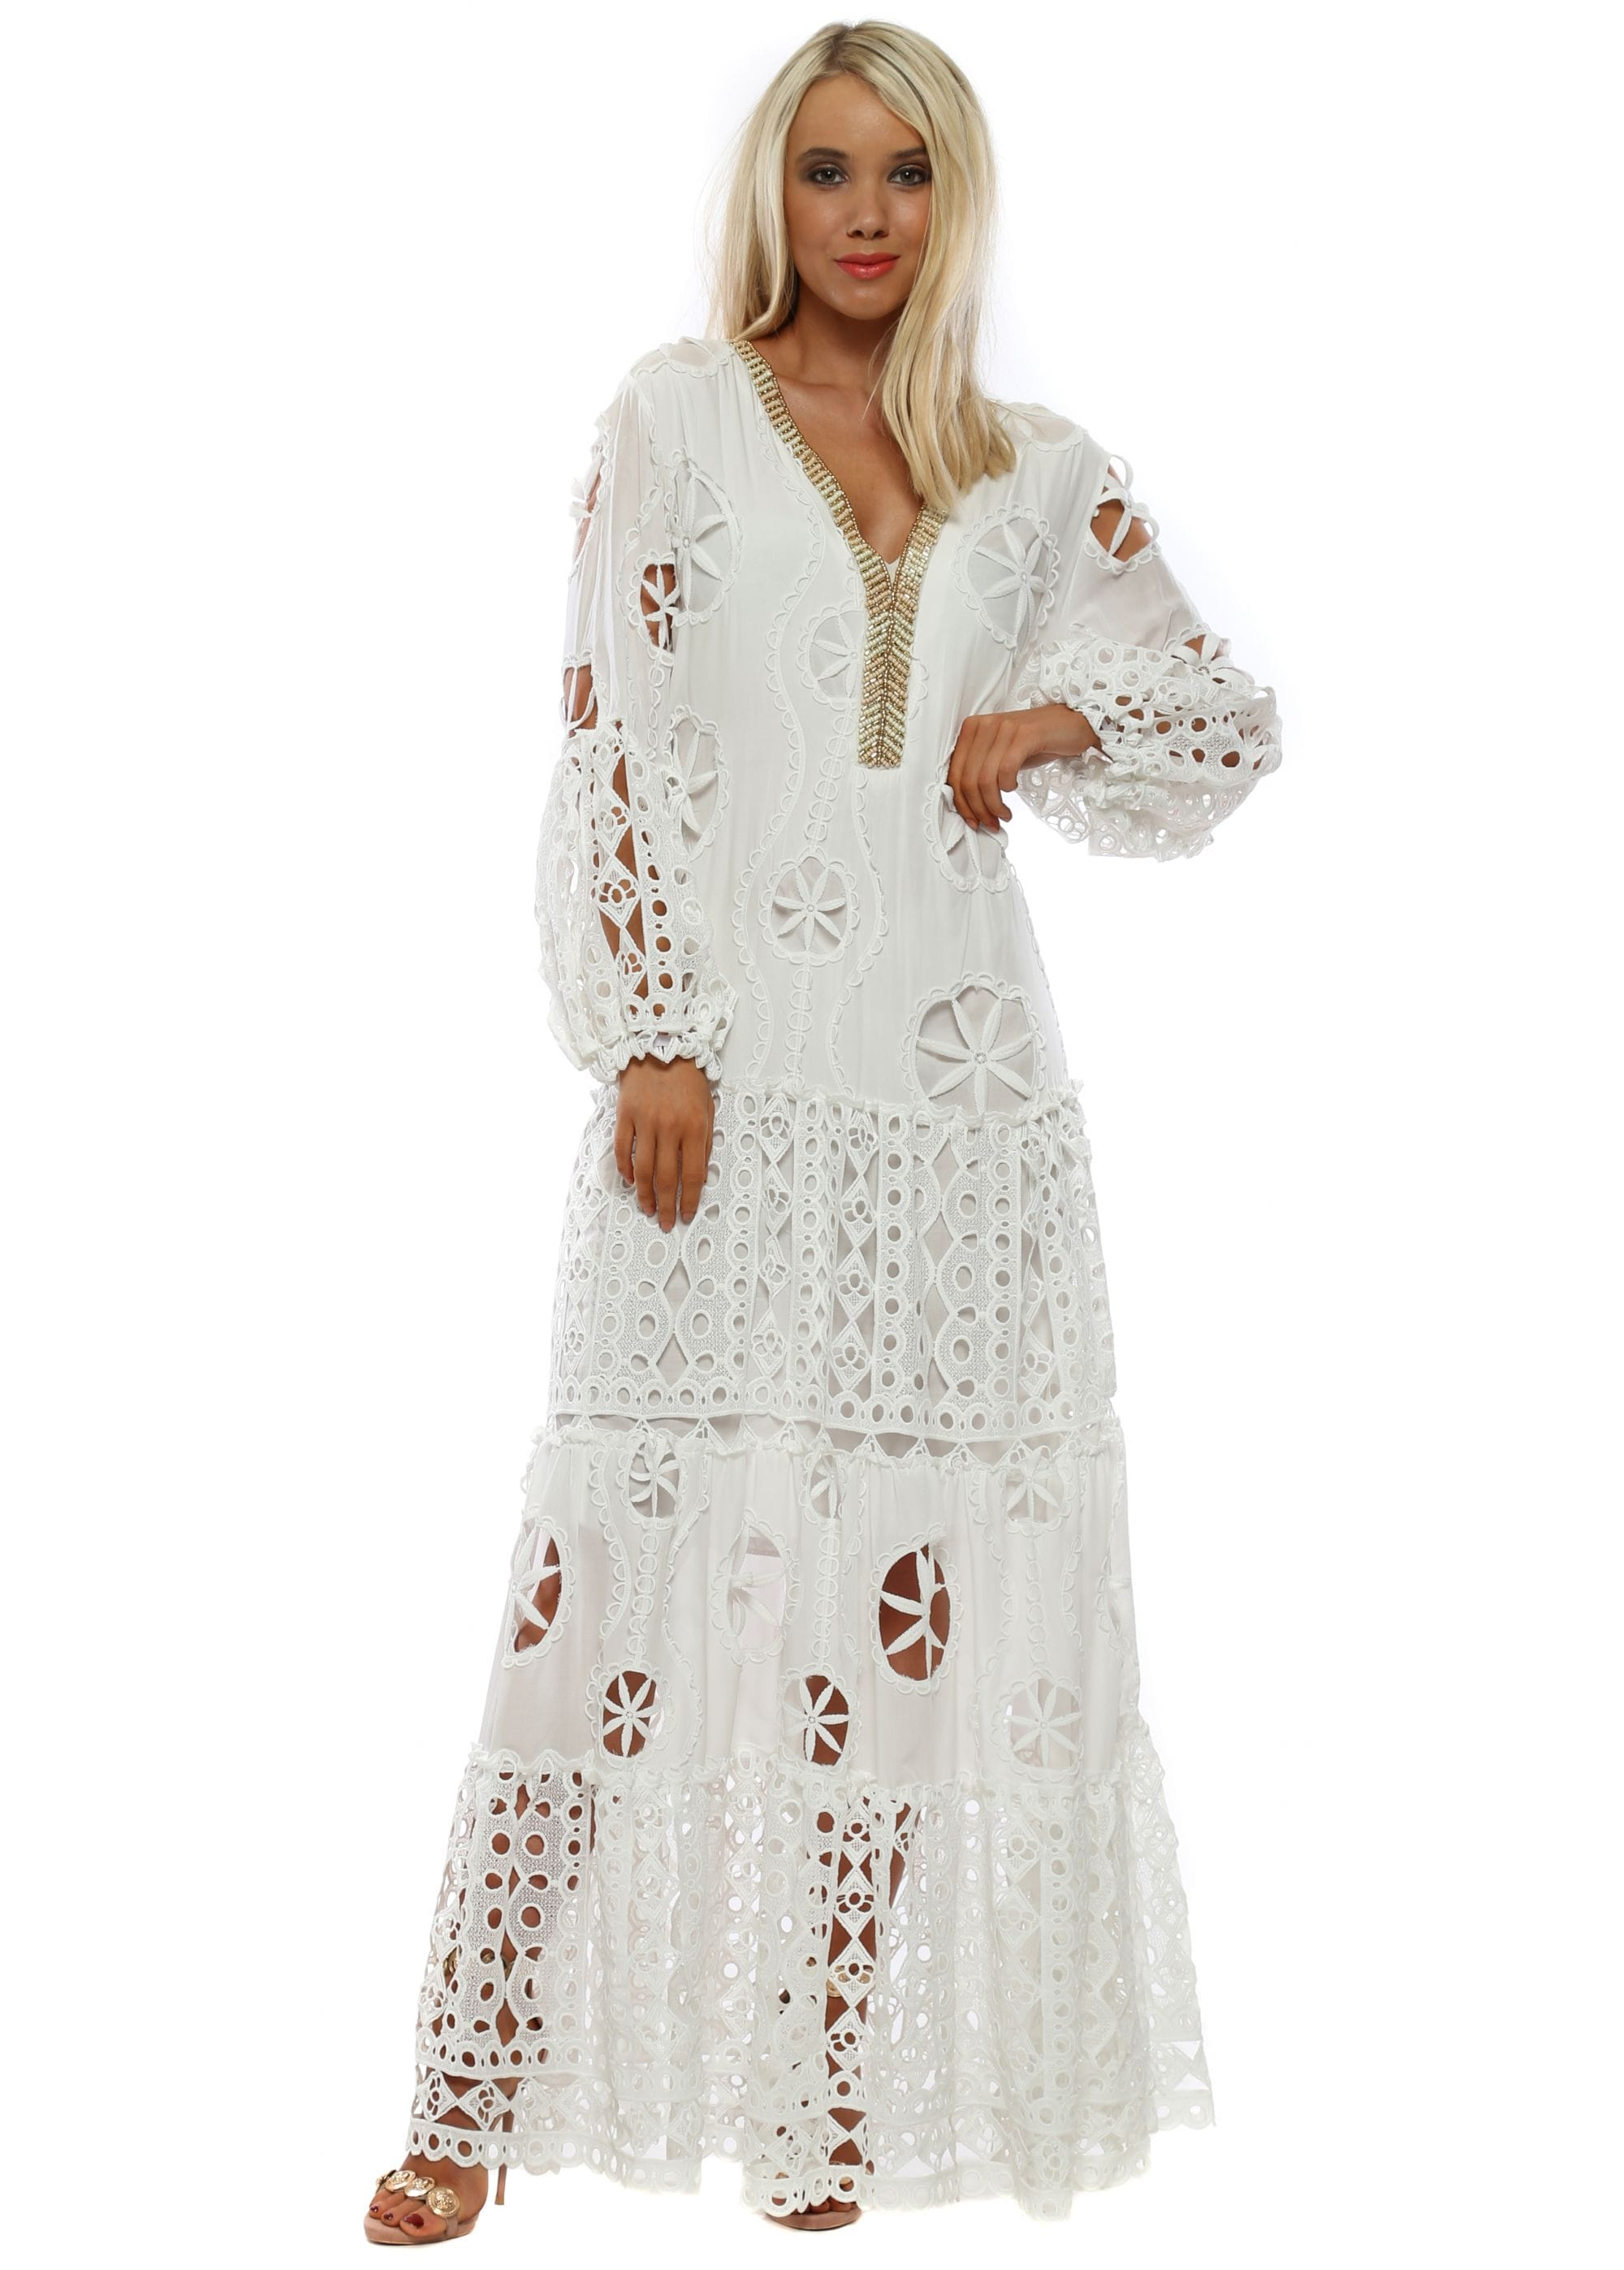 b1be346f0885 Laurie & Joe White Dress | White Maxi Dress |Designer Desirables